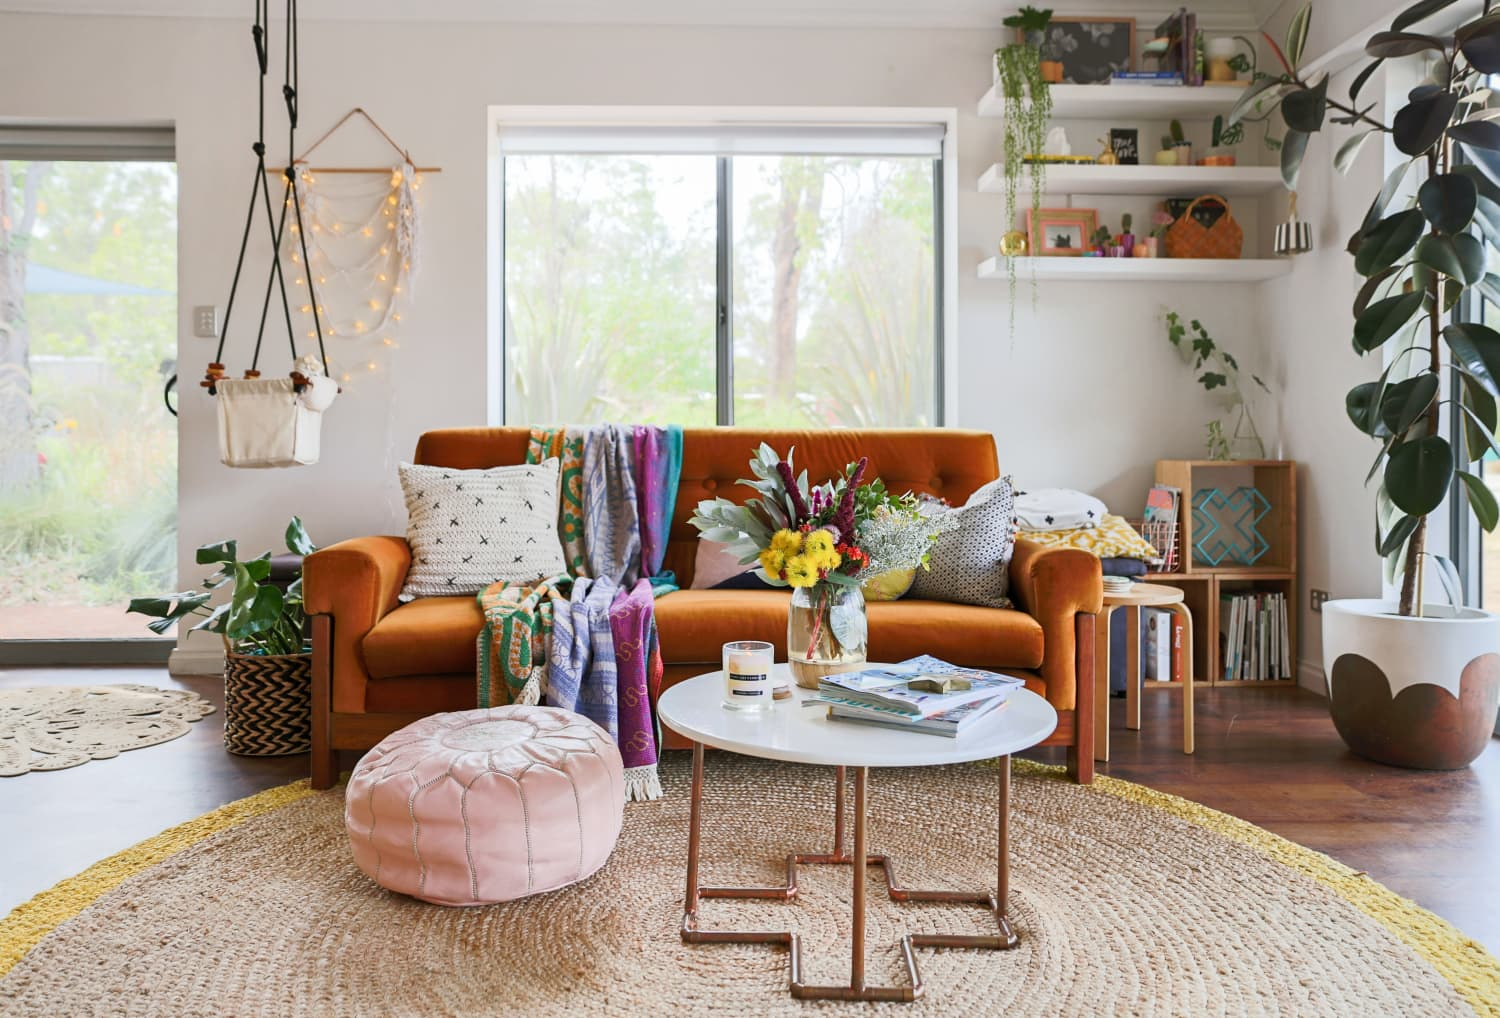 6 Feng Shui Tips Every Novice Should Know